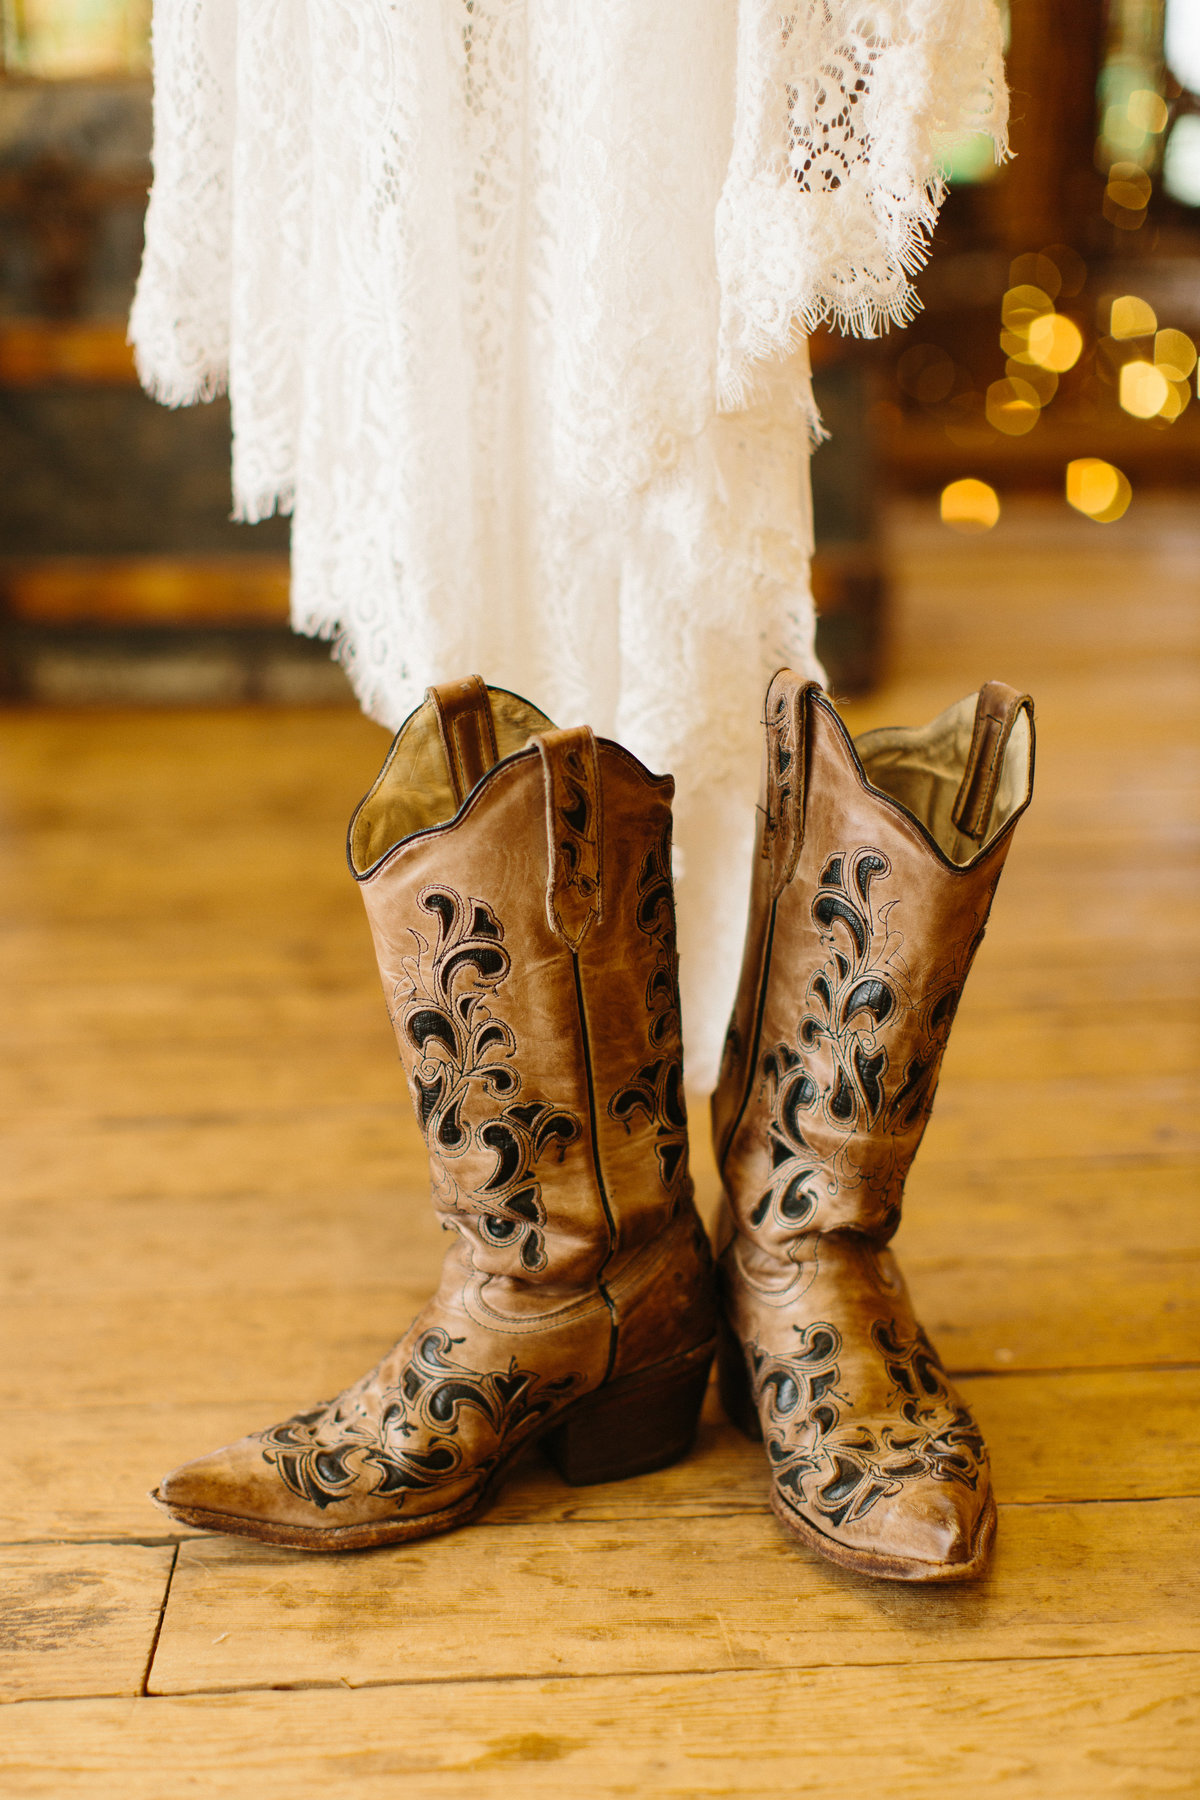 Cowboy boots on a wood floor next to a wedding dress.